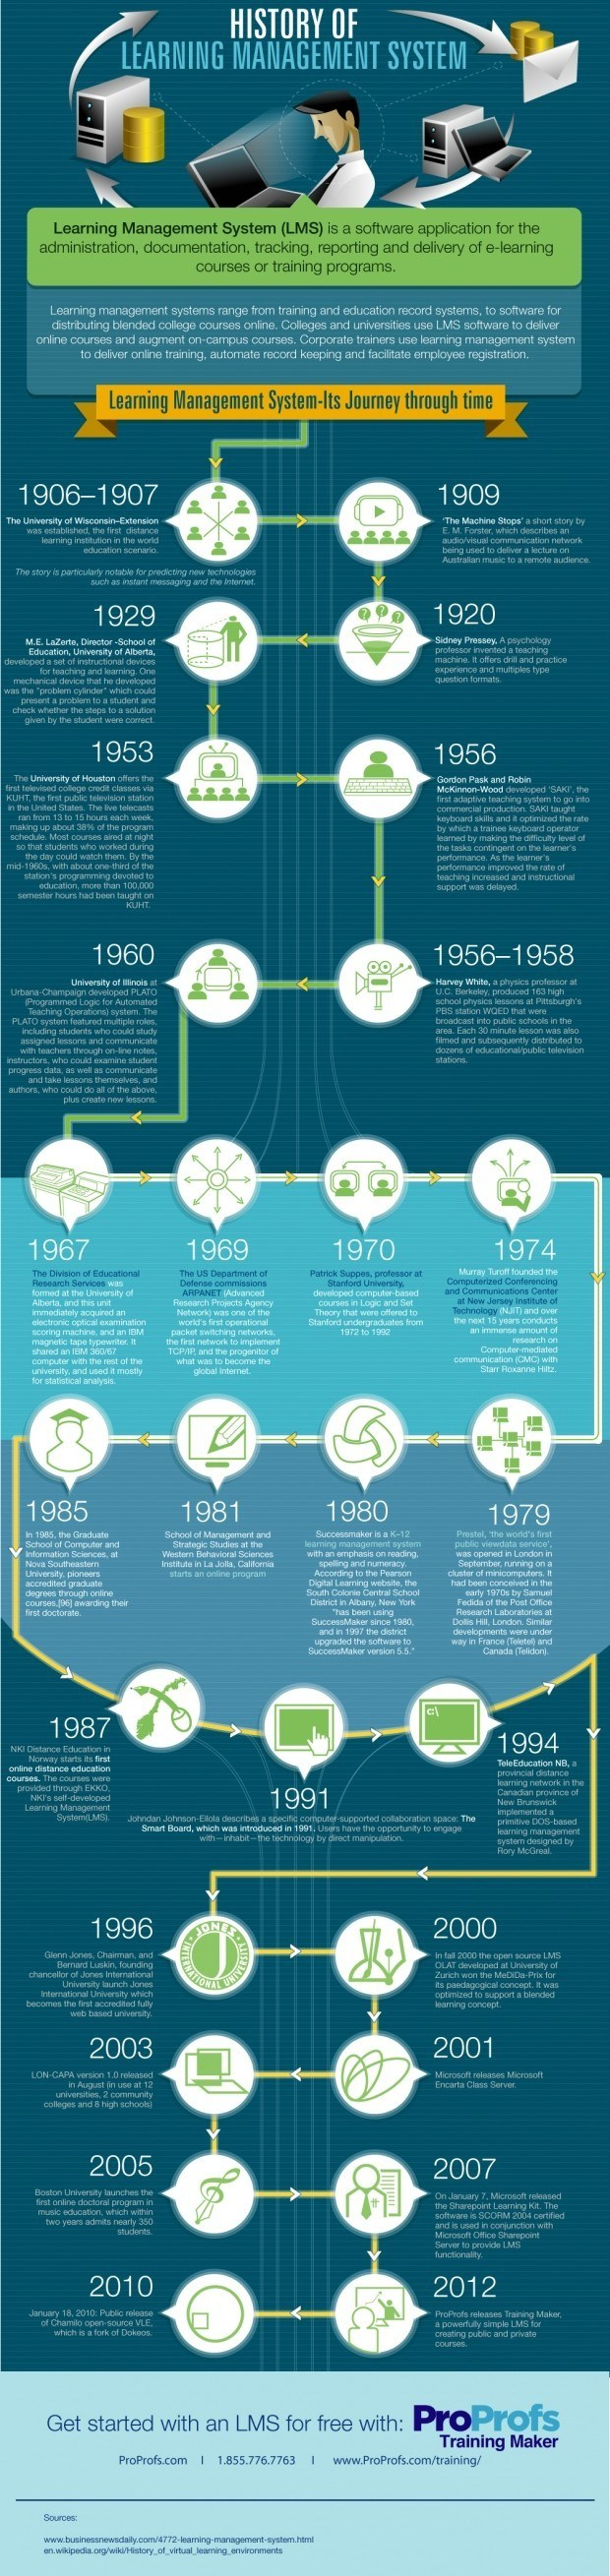 The History of Learning Management Systems Infographic | e-Learning Infographics thumbnail